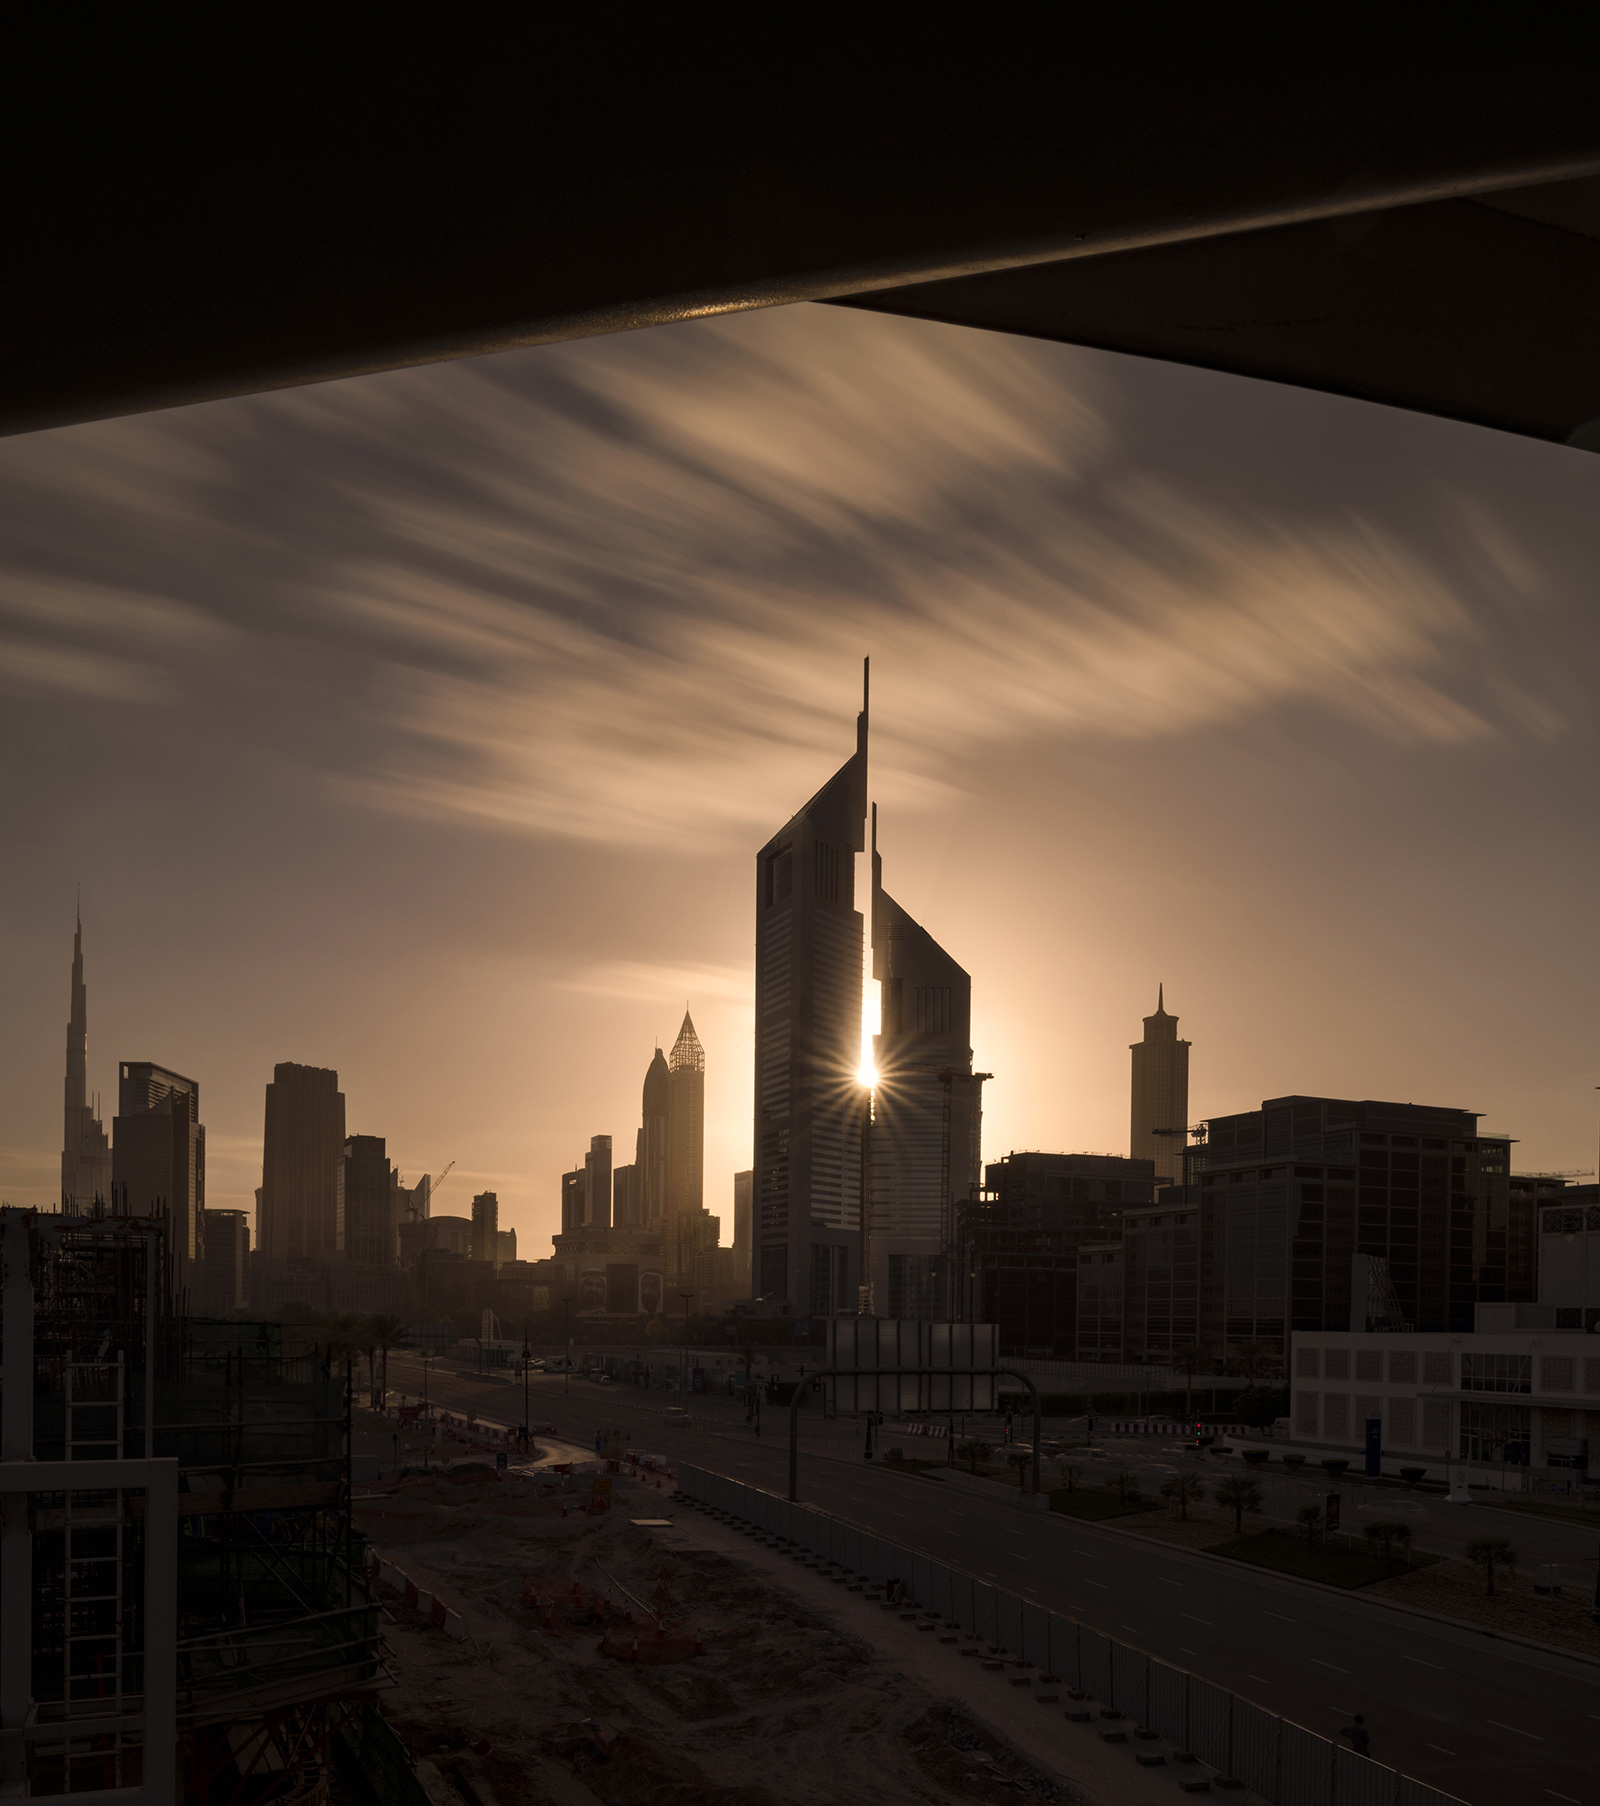 Emirates towers during sunset